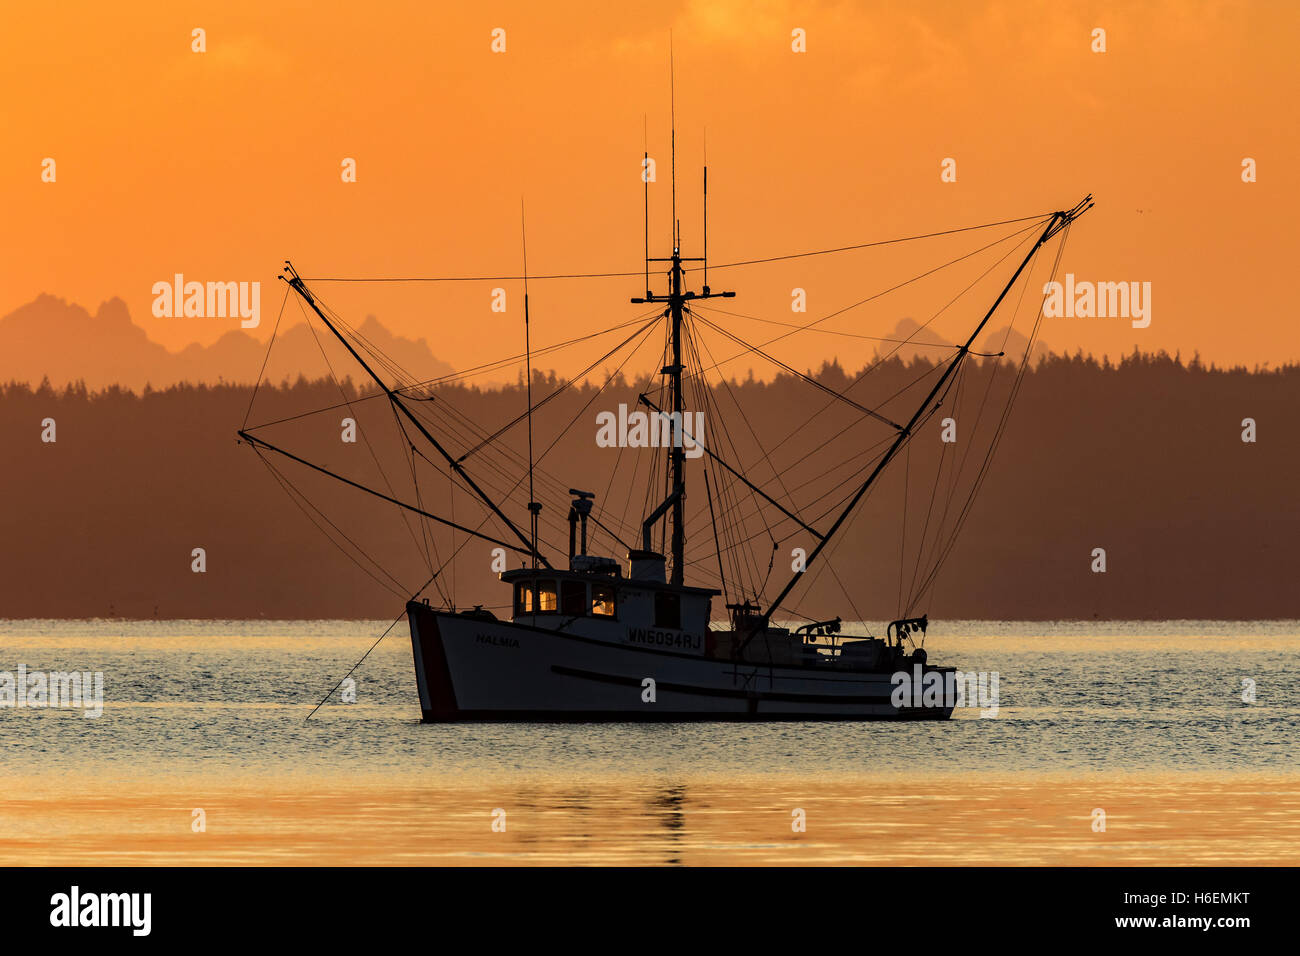 Fishing boat troller at anchor during sunrise in Port Townsend, Puget Sound. Salmon fishing boat. - Stock Image